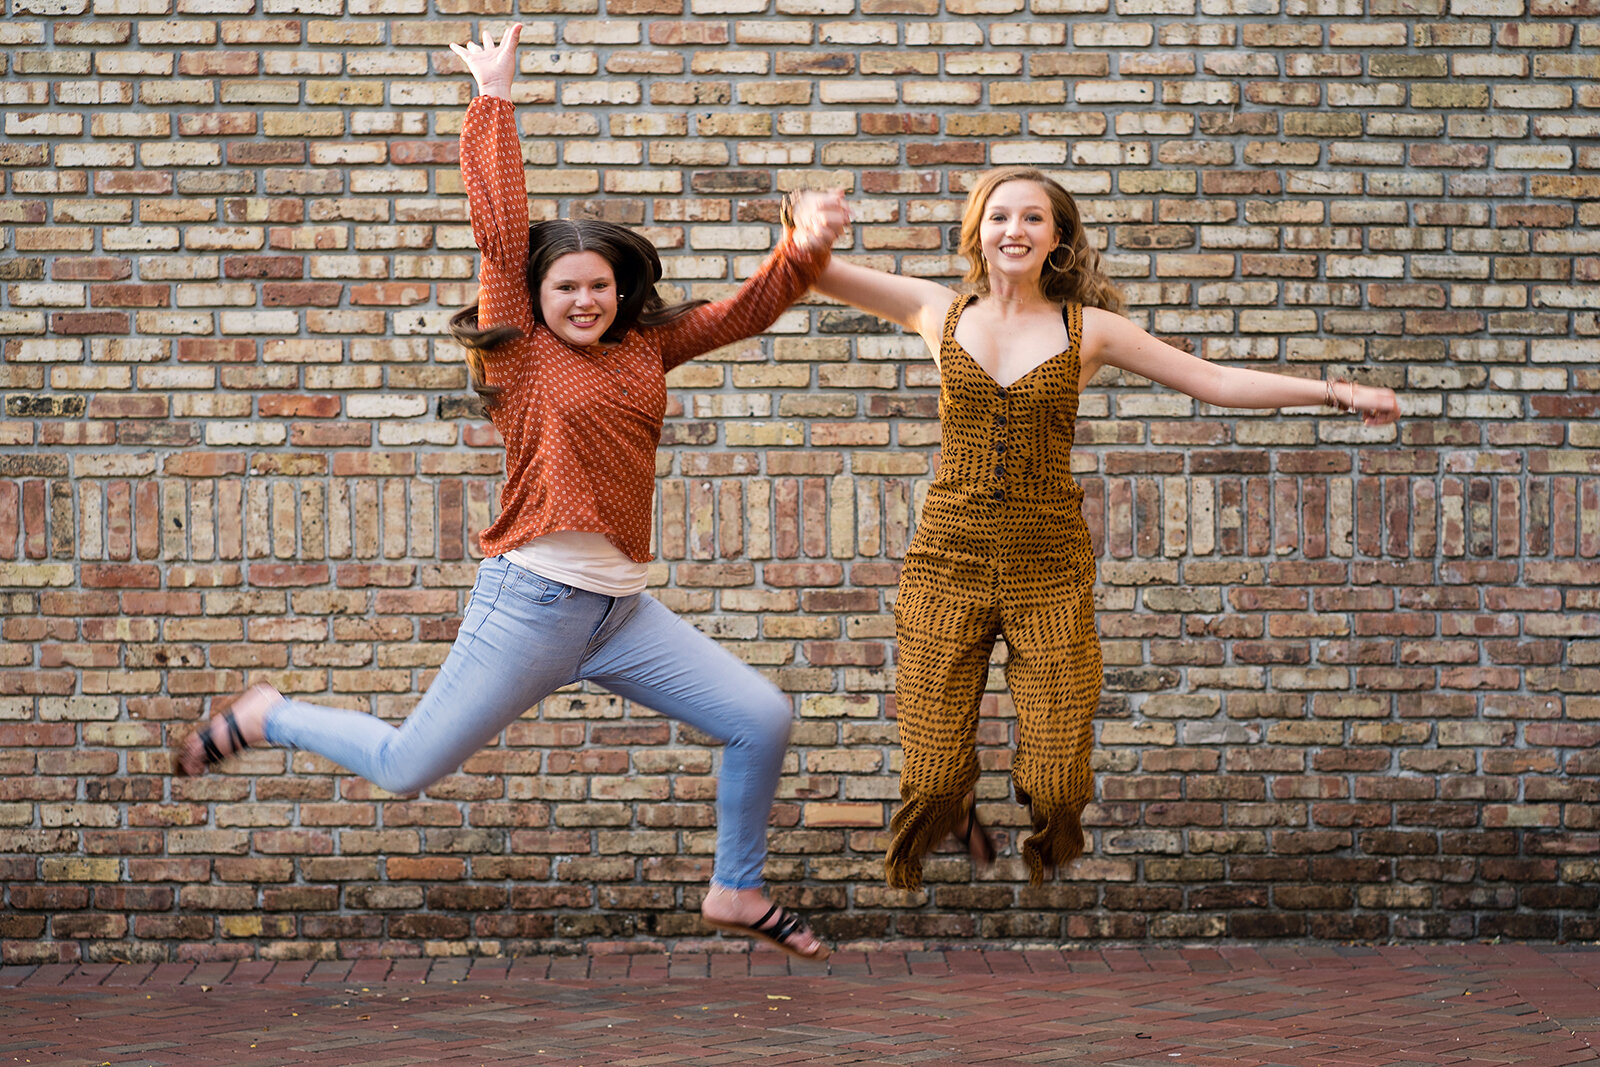 Teen Girls Jump in Front of Brick Wall Plantation Photographer